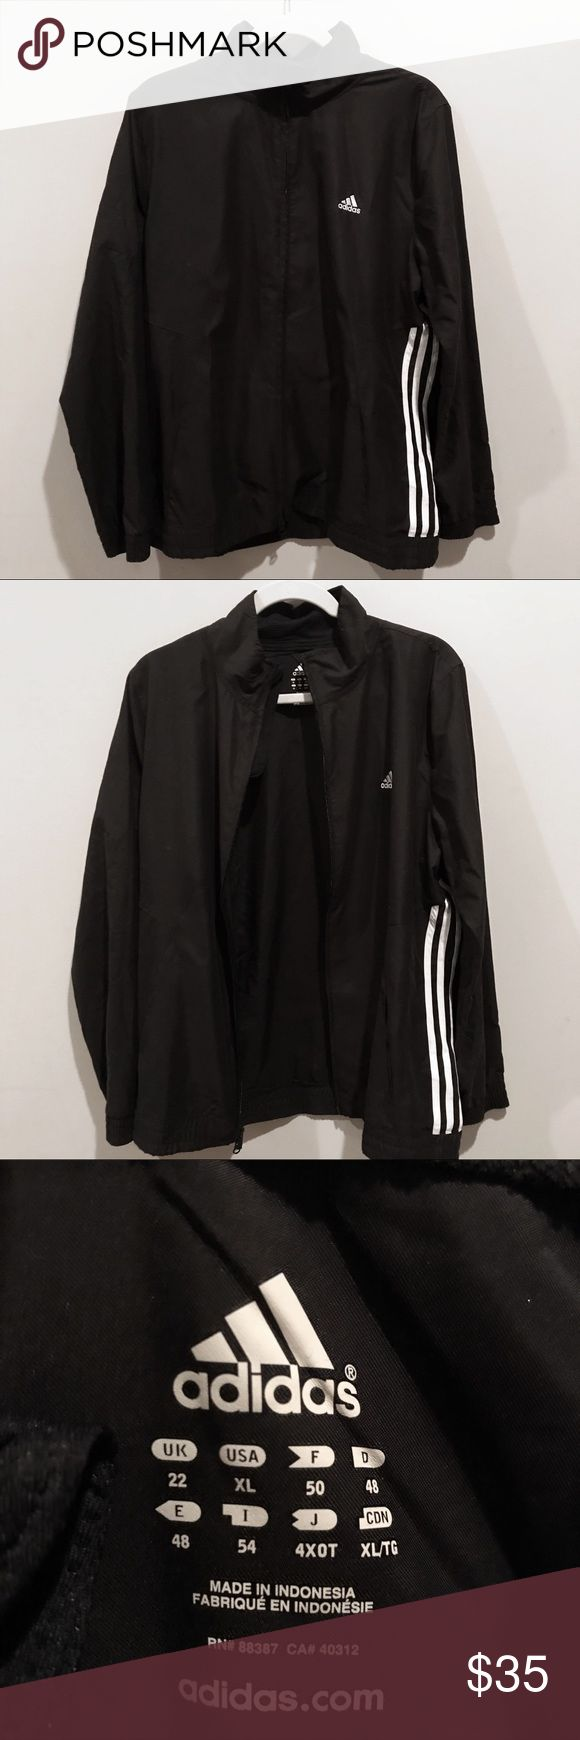 Classic adidas track jacket A true classic style with windbreaking abilities. adidas Jackets & Coats